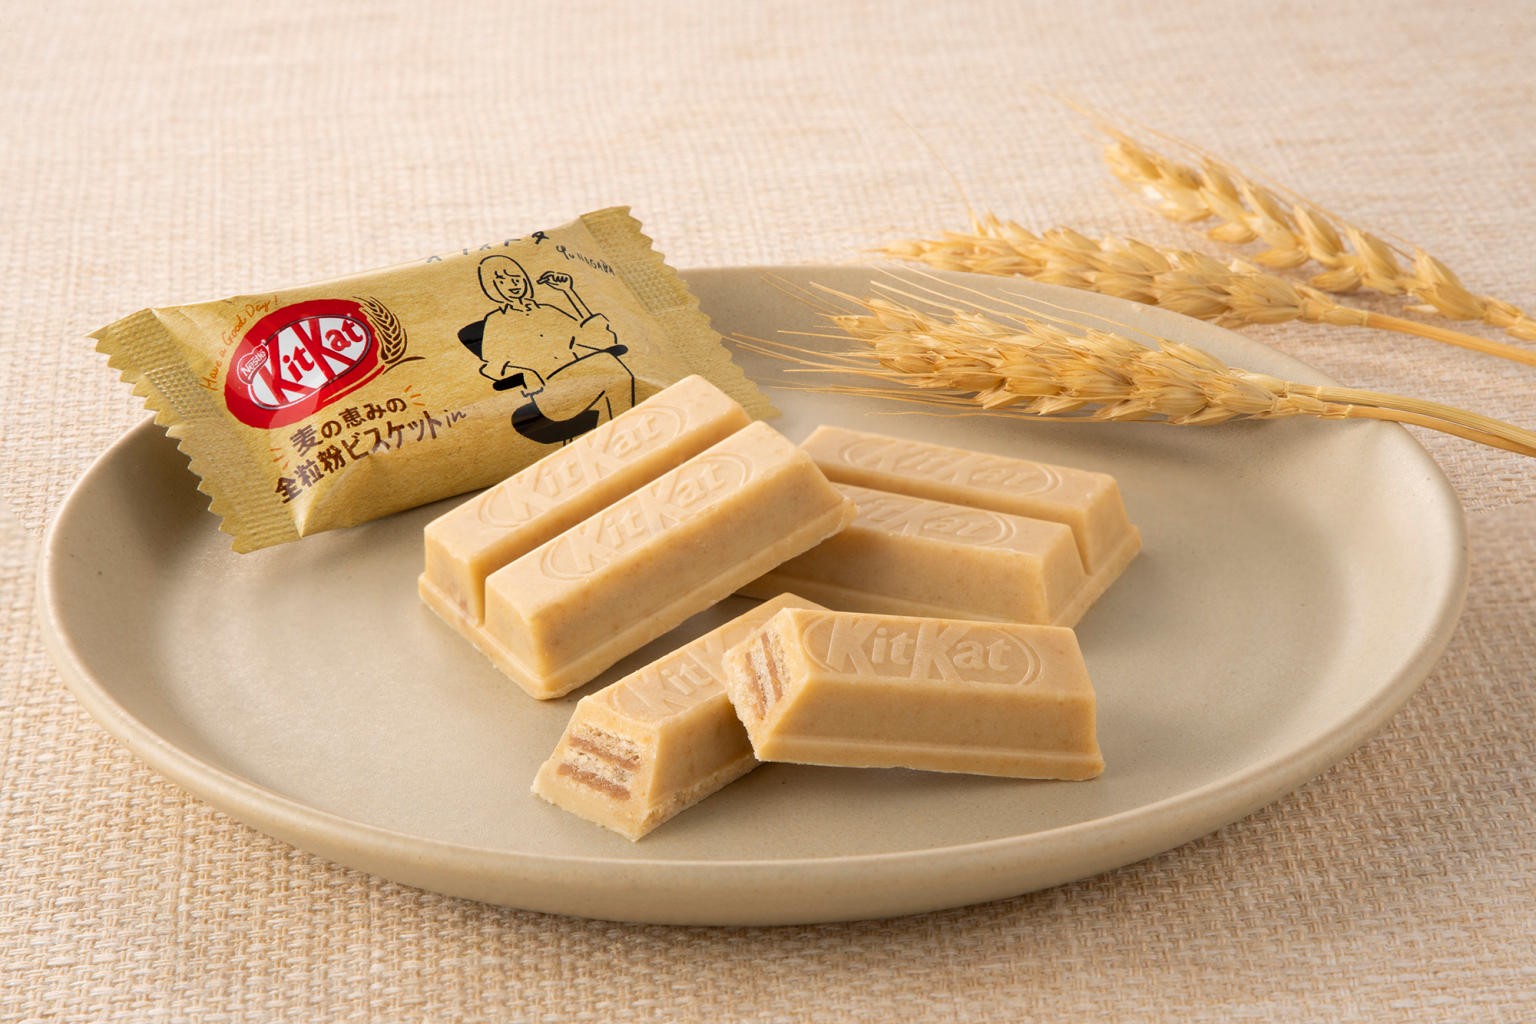 Japanese-Kit-Kat-new-wheat-biscuit-Graham-cracker-Japan-limited-edition-healthy-chocolate-3.jpg